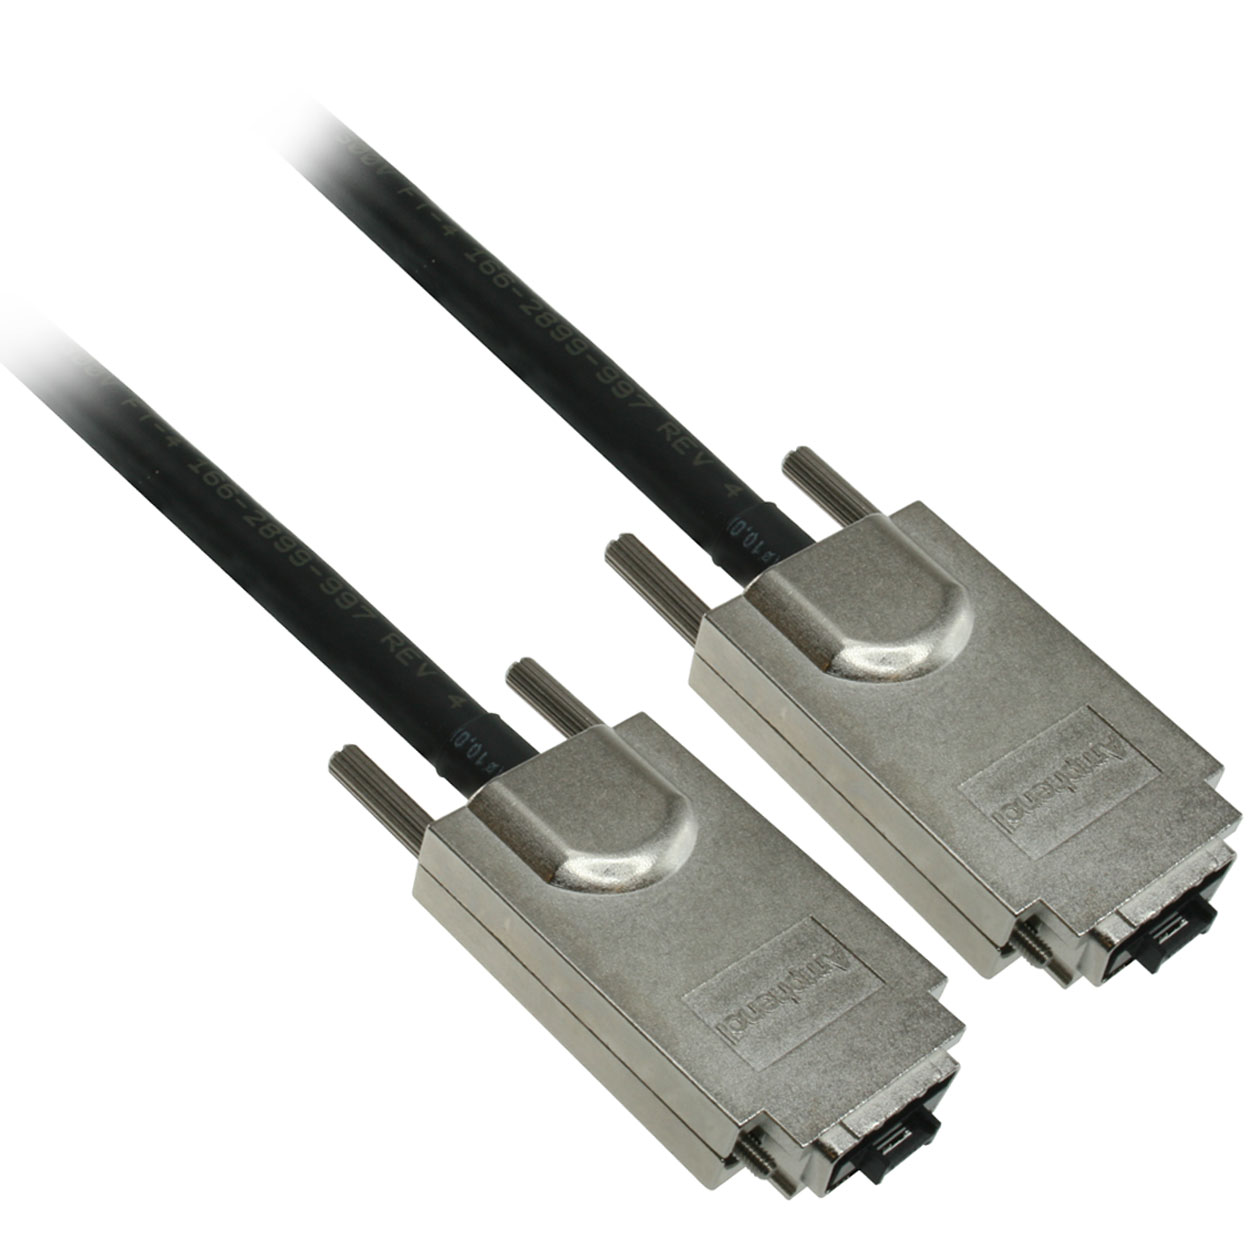 2 meter External SAS 34 pin (SFF-8470) Male to SAS 34 pin (SFF-8470) Male Cable